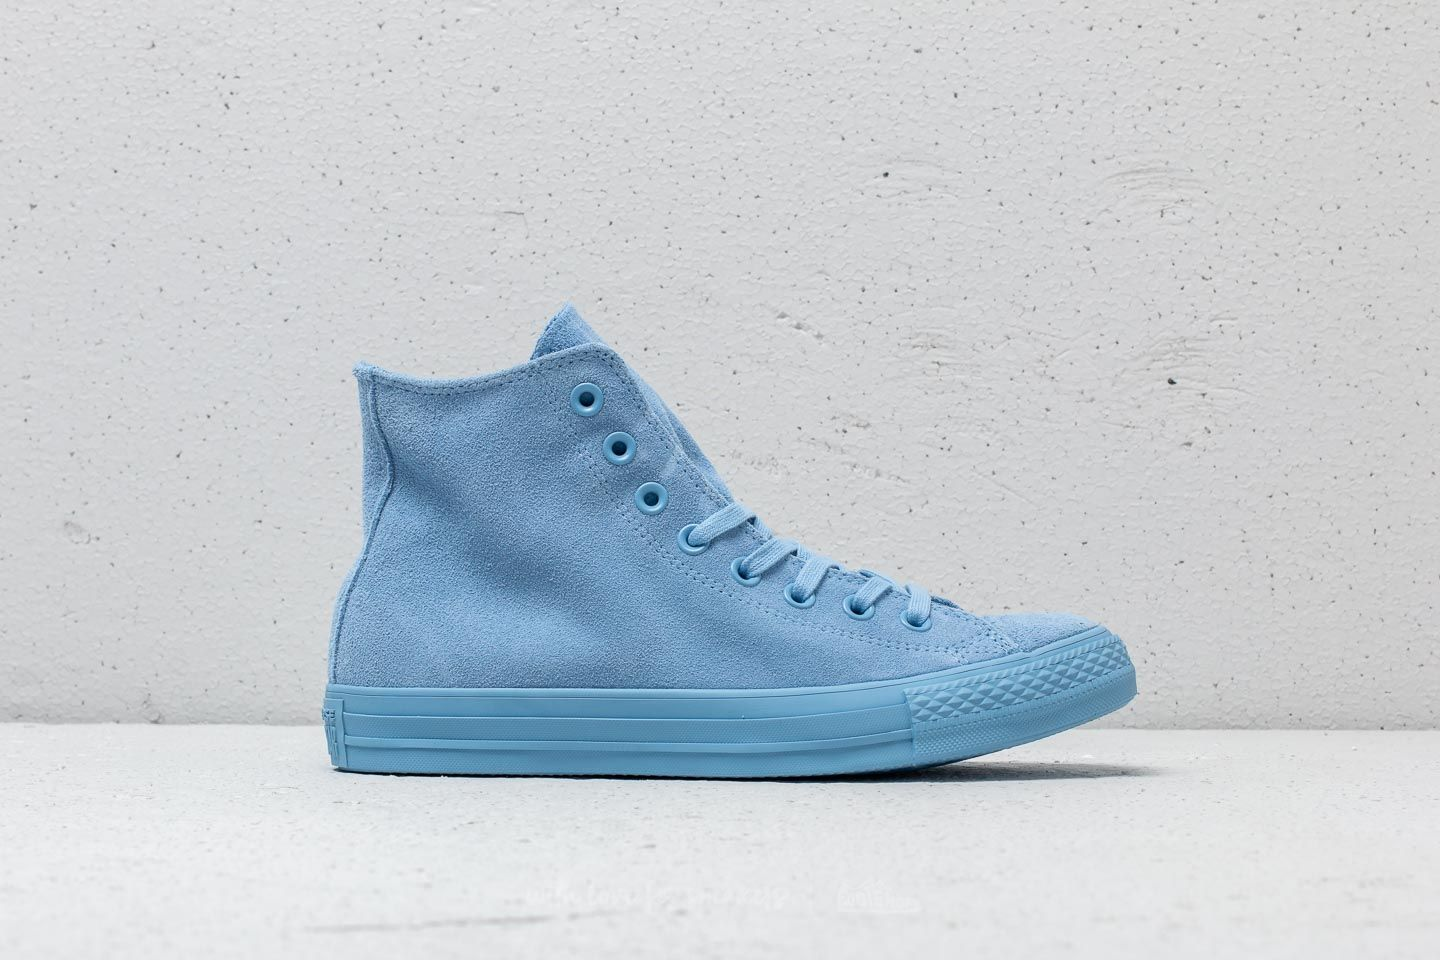 47982788f3d4 ... greece converse chuck taylor all star hi light blue light blue at a  great price 55ed4